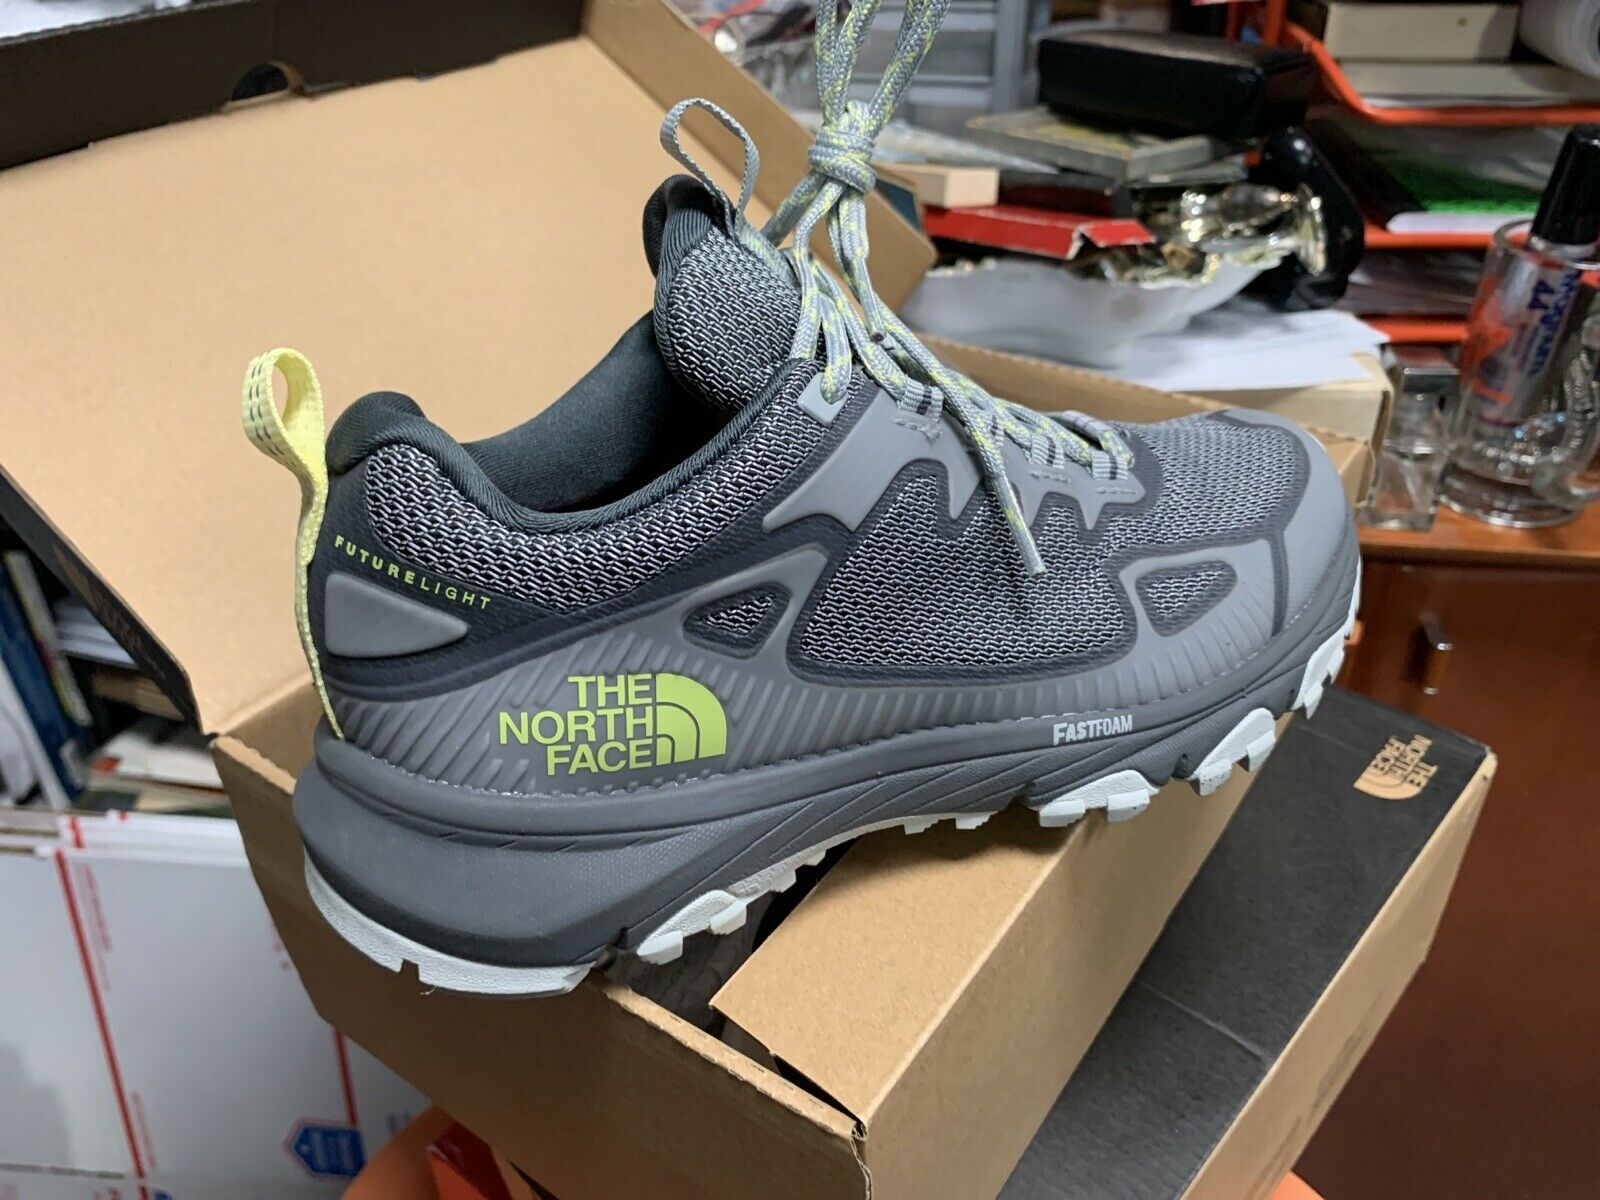 The North Face Ultra Fastpack IV Futurelight Sneakers High Rise Grey Sz 6